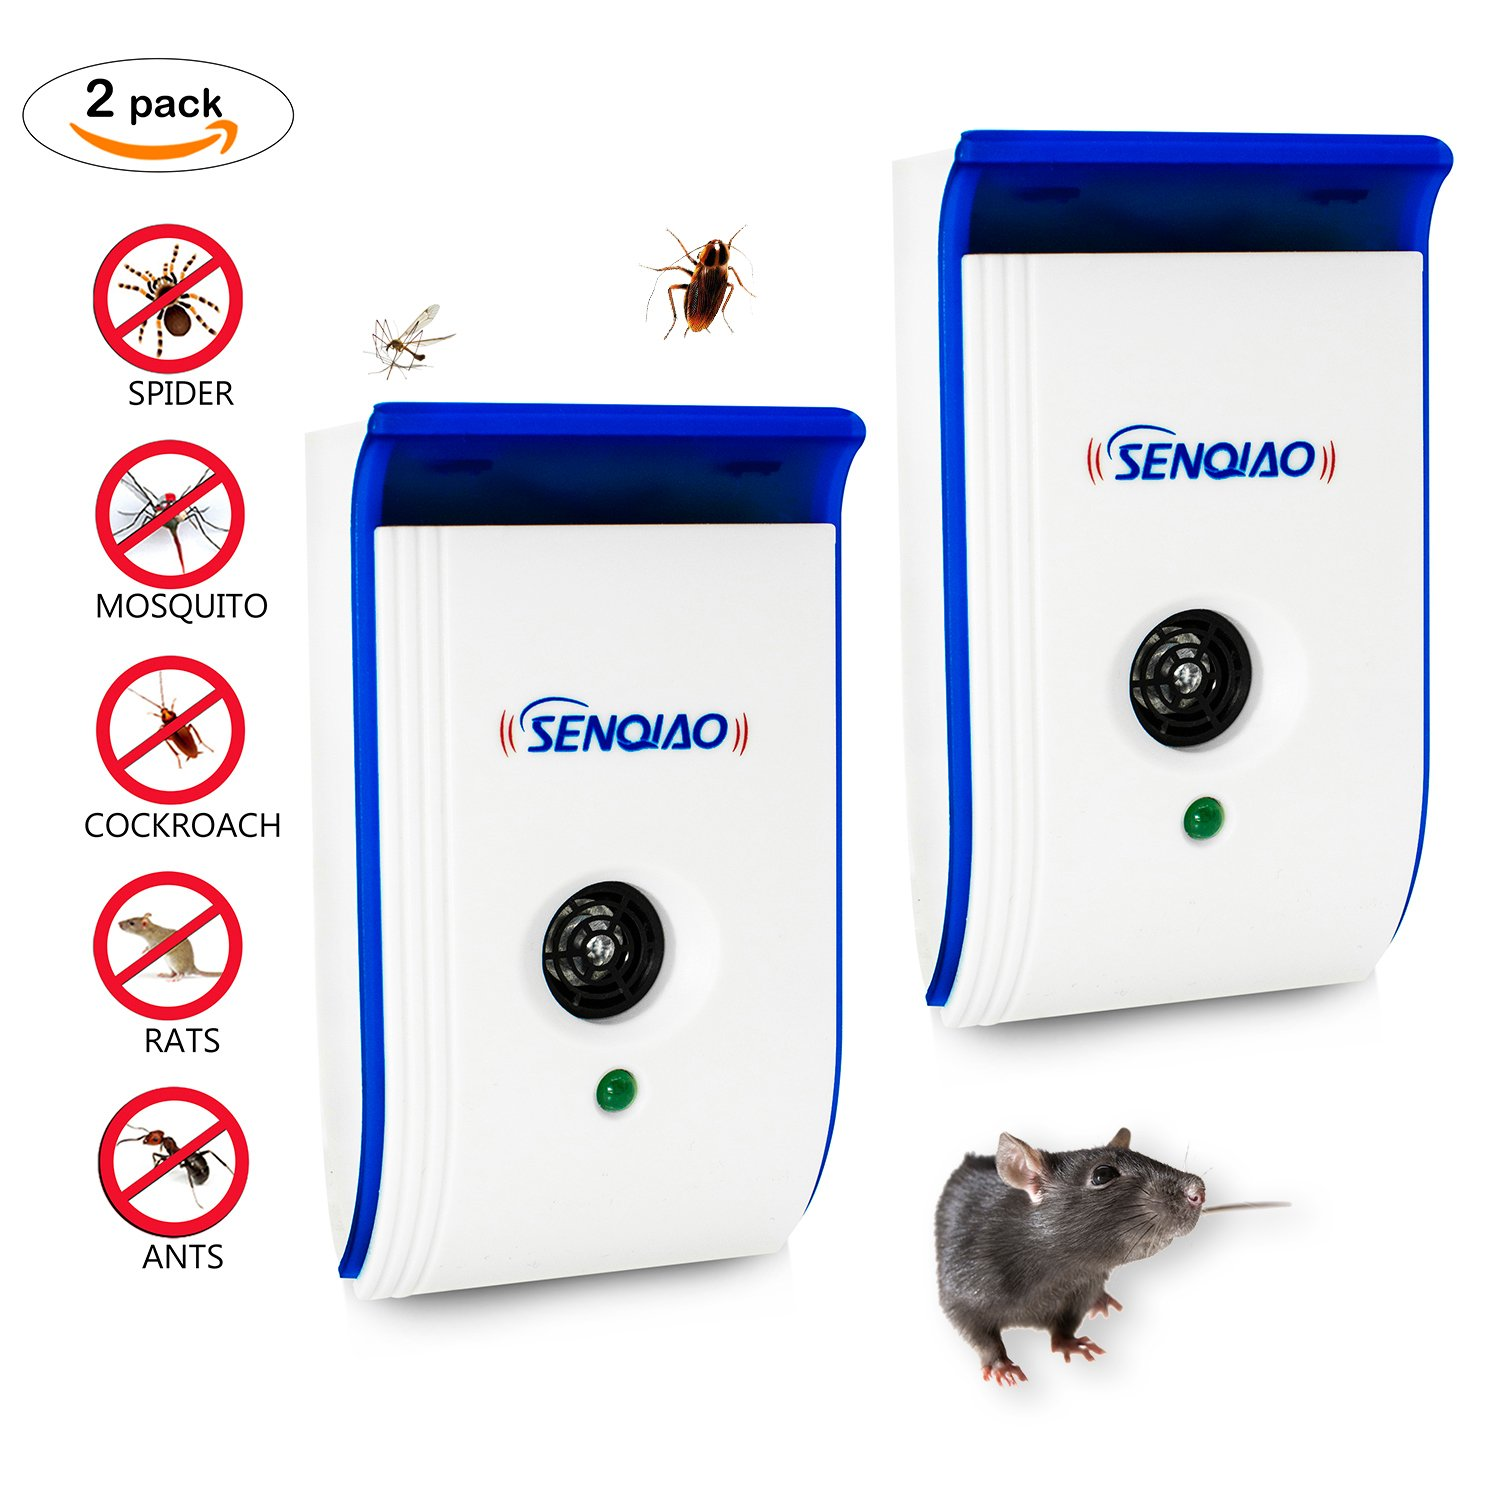 Ultrasonic Pest Repellent,Senqiao Electronic Insect Repeller Control, Repellent For Rodent